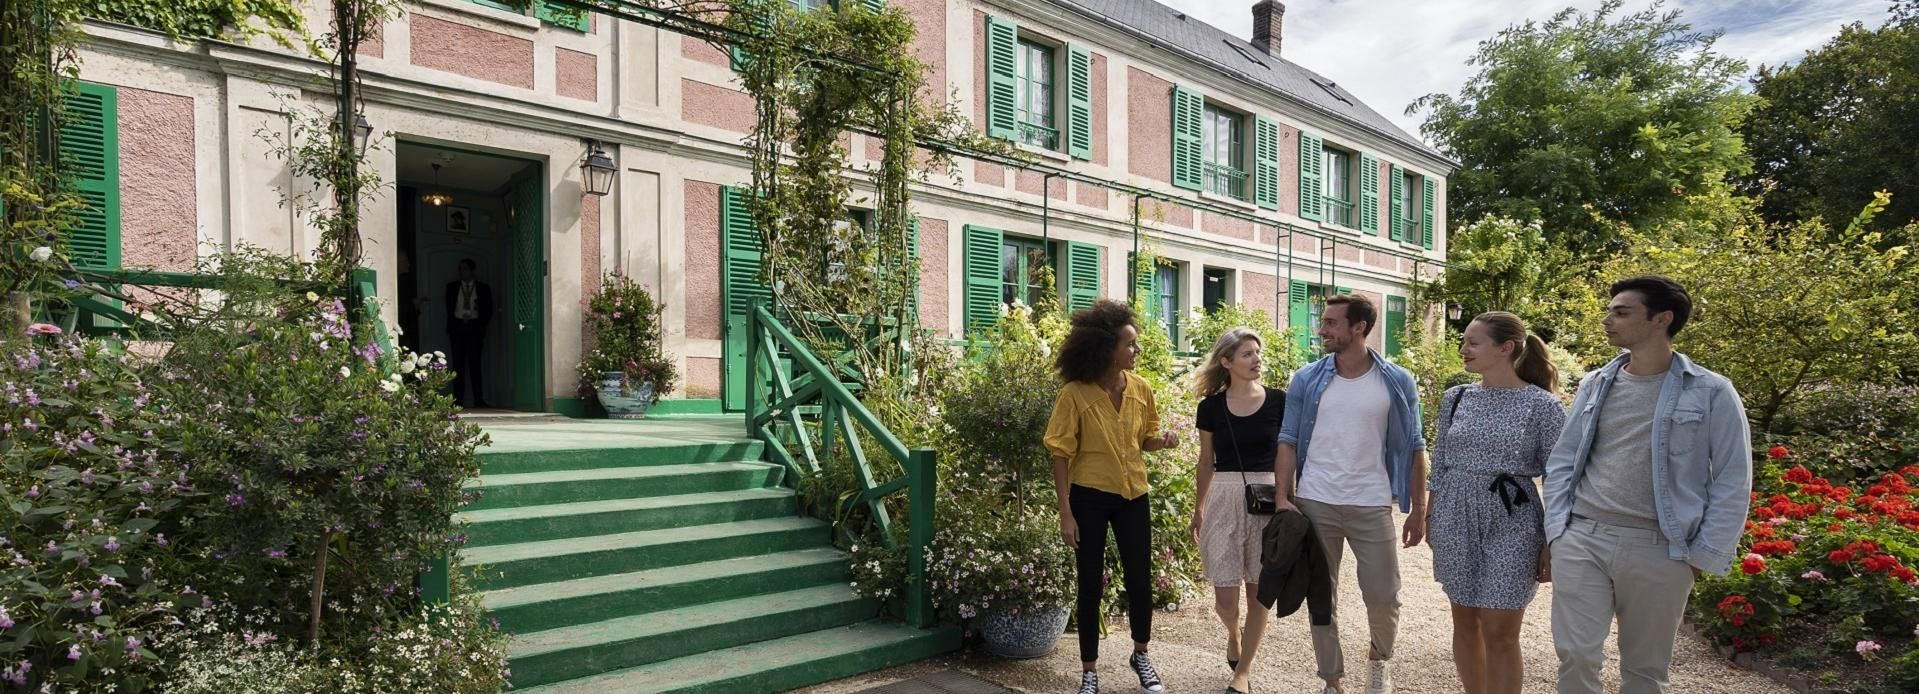 From Paris: Monet Impressionism Tour to Giverny by Minibus